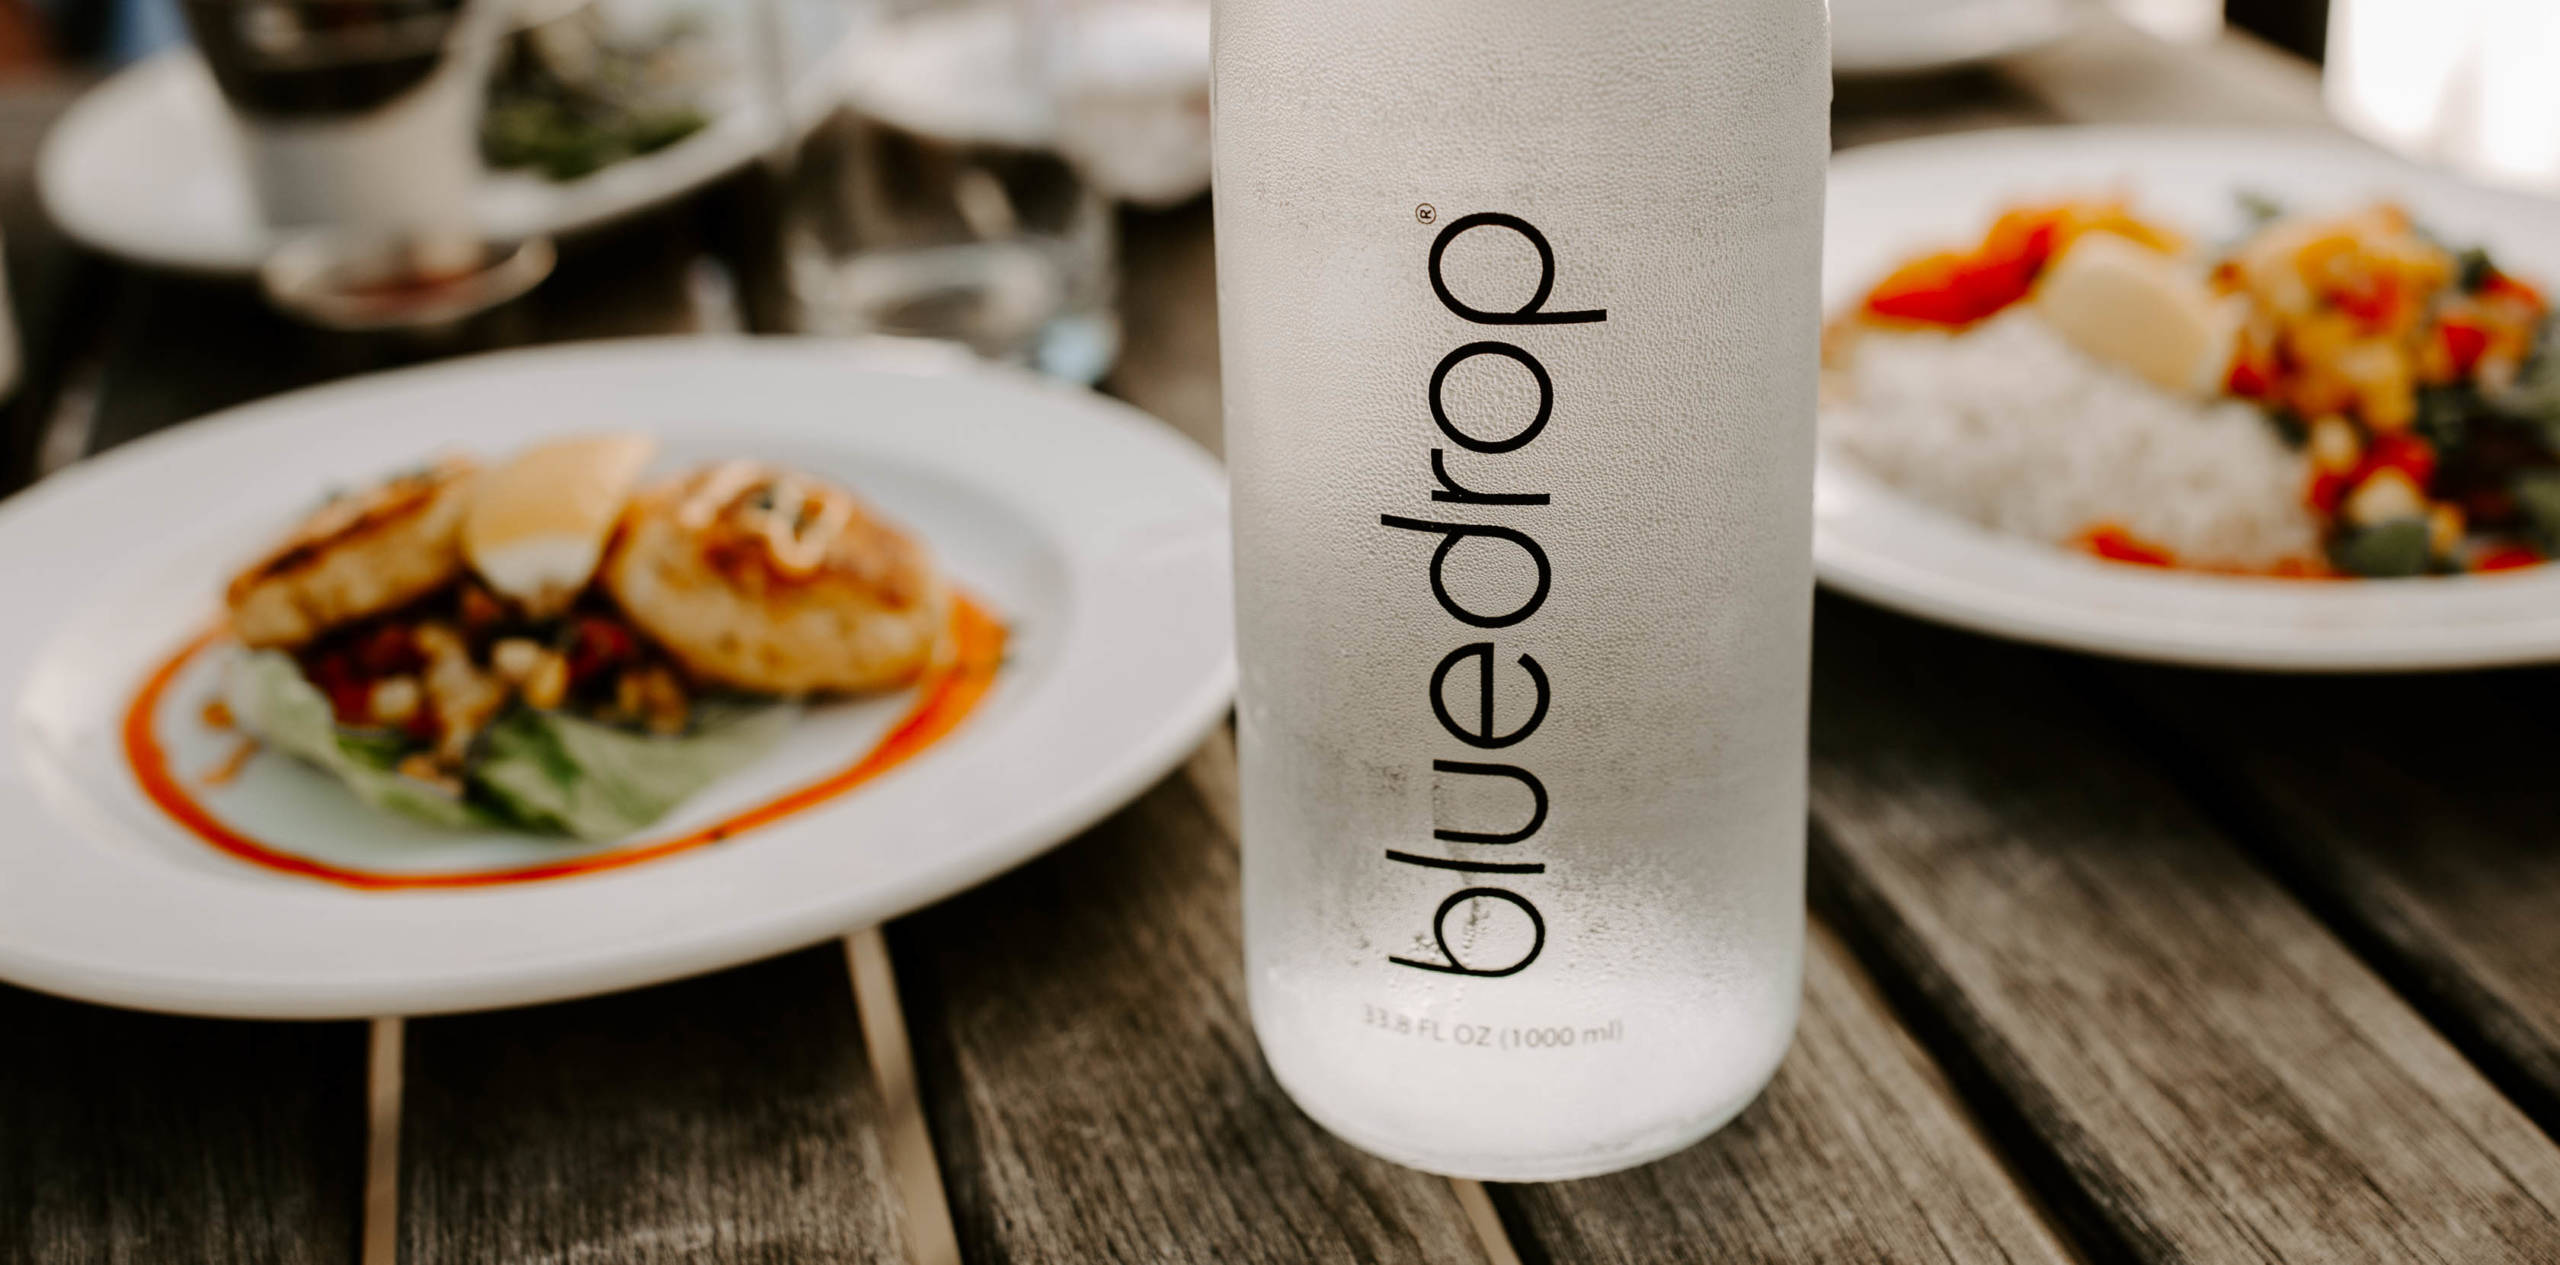 A bottle of bluedrop water on a table at a restaurant.